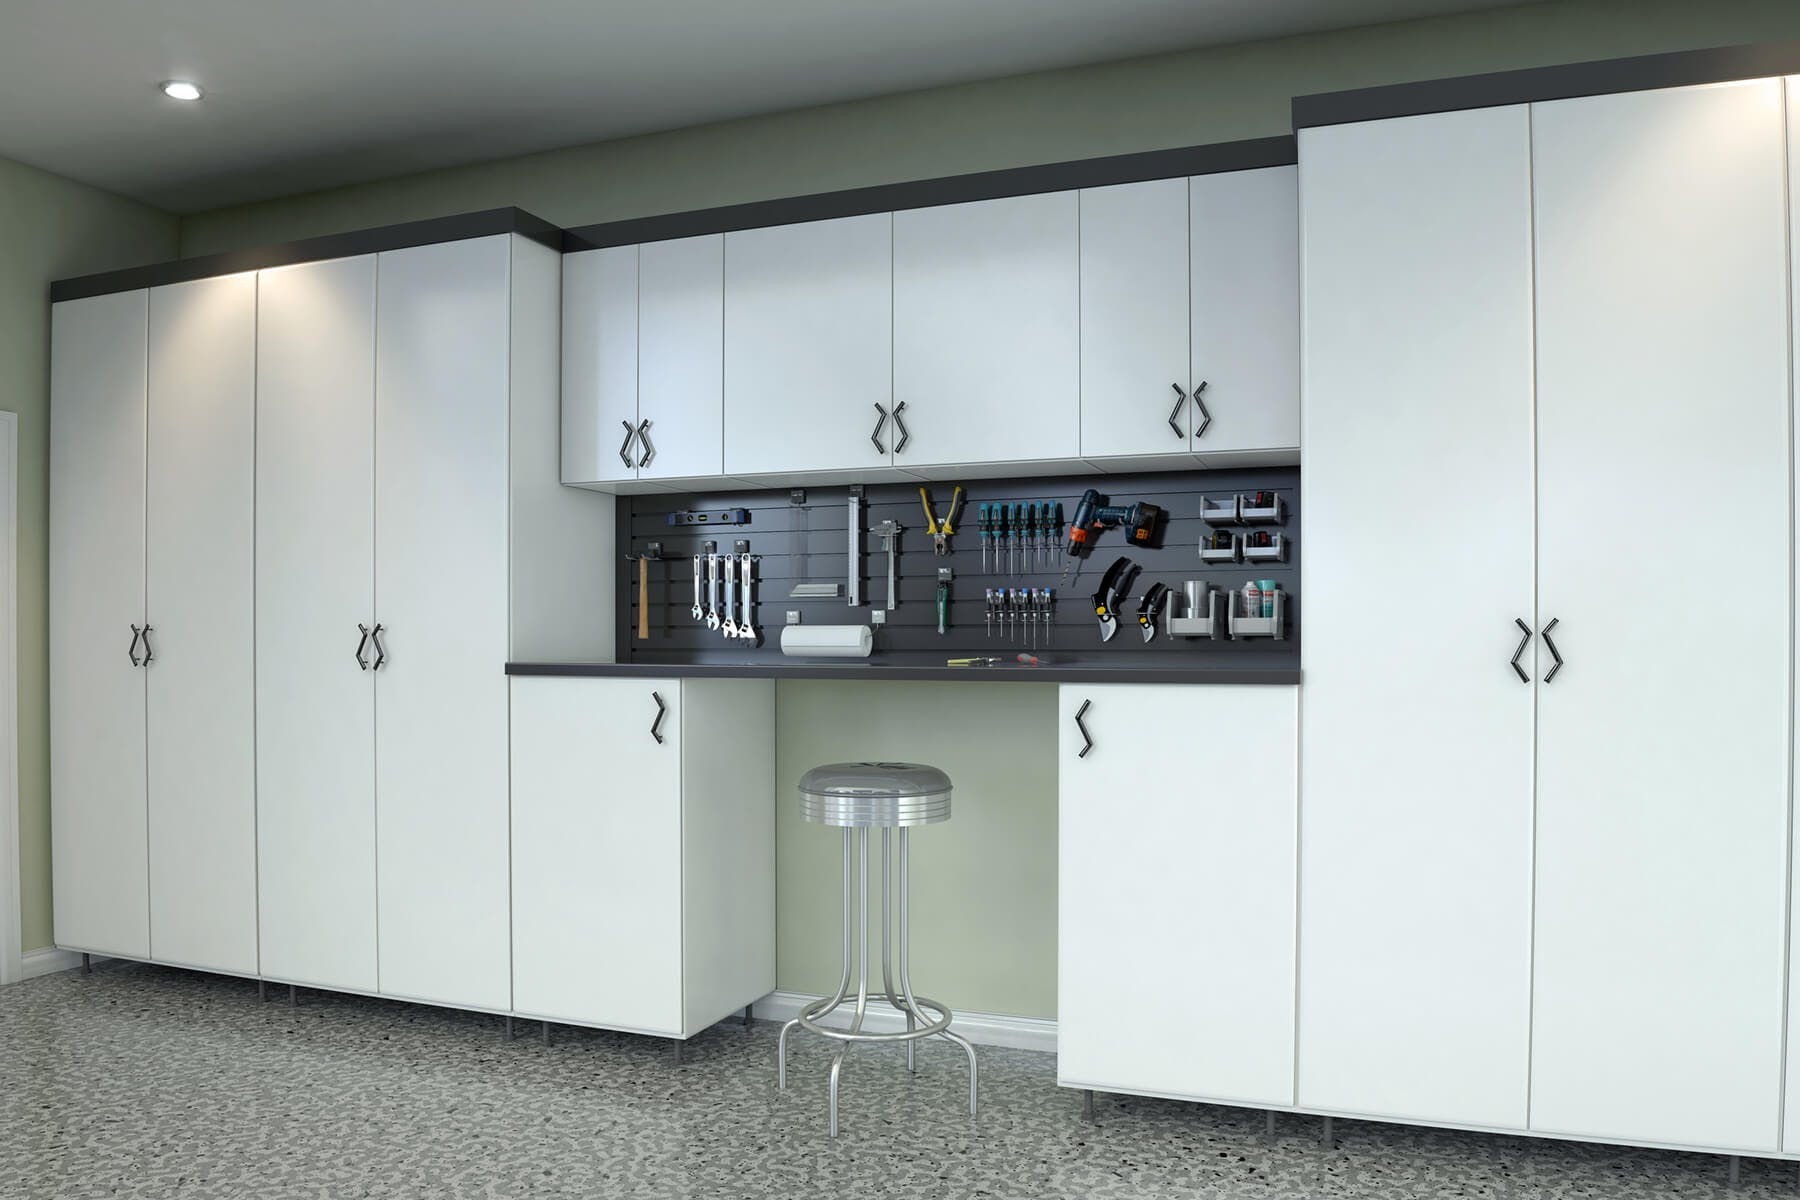 Garage Cabinets Texas Garage Storage Cabinets Design And Install Closet Factory